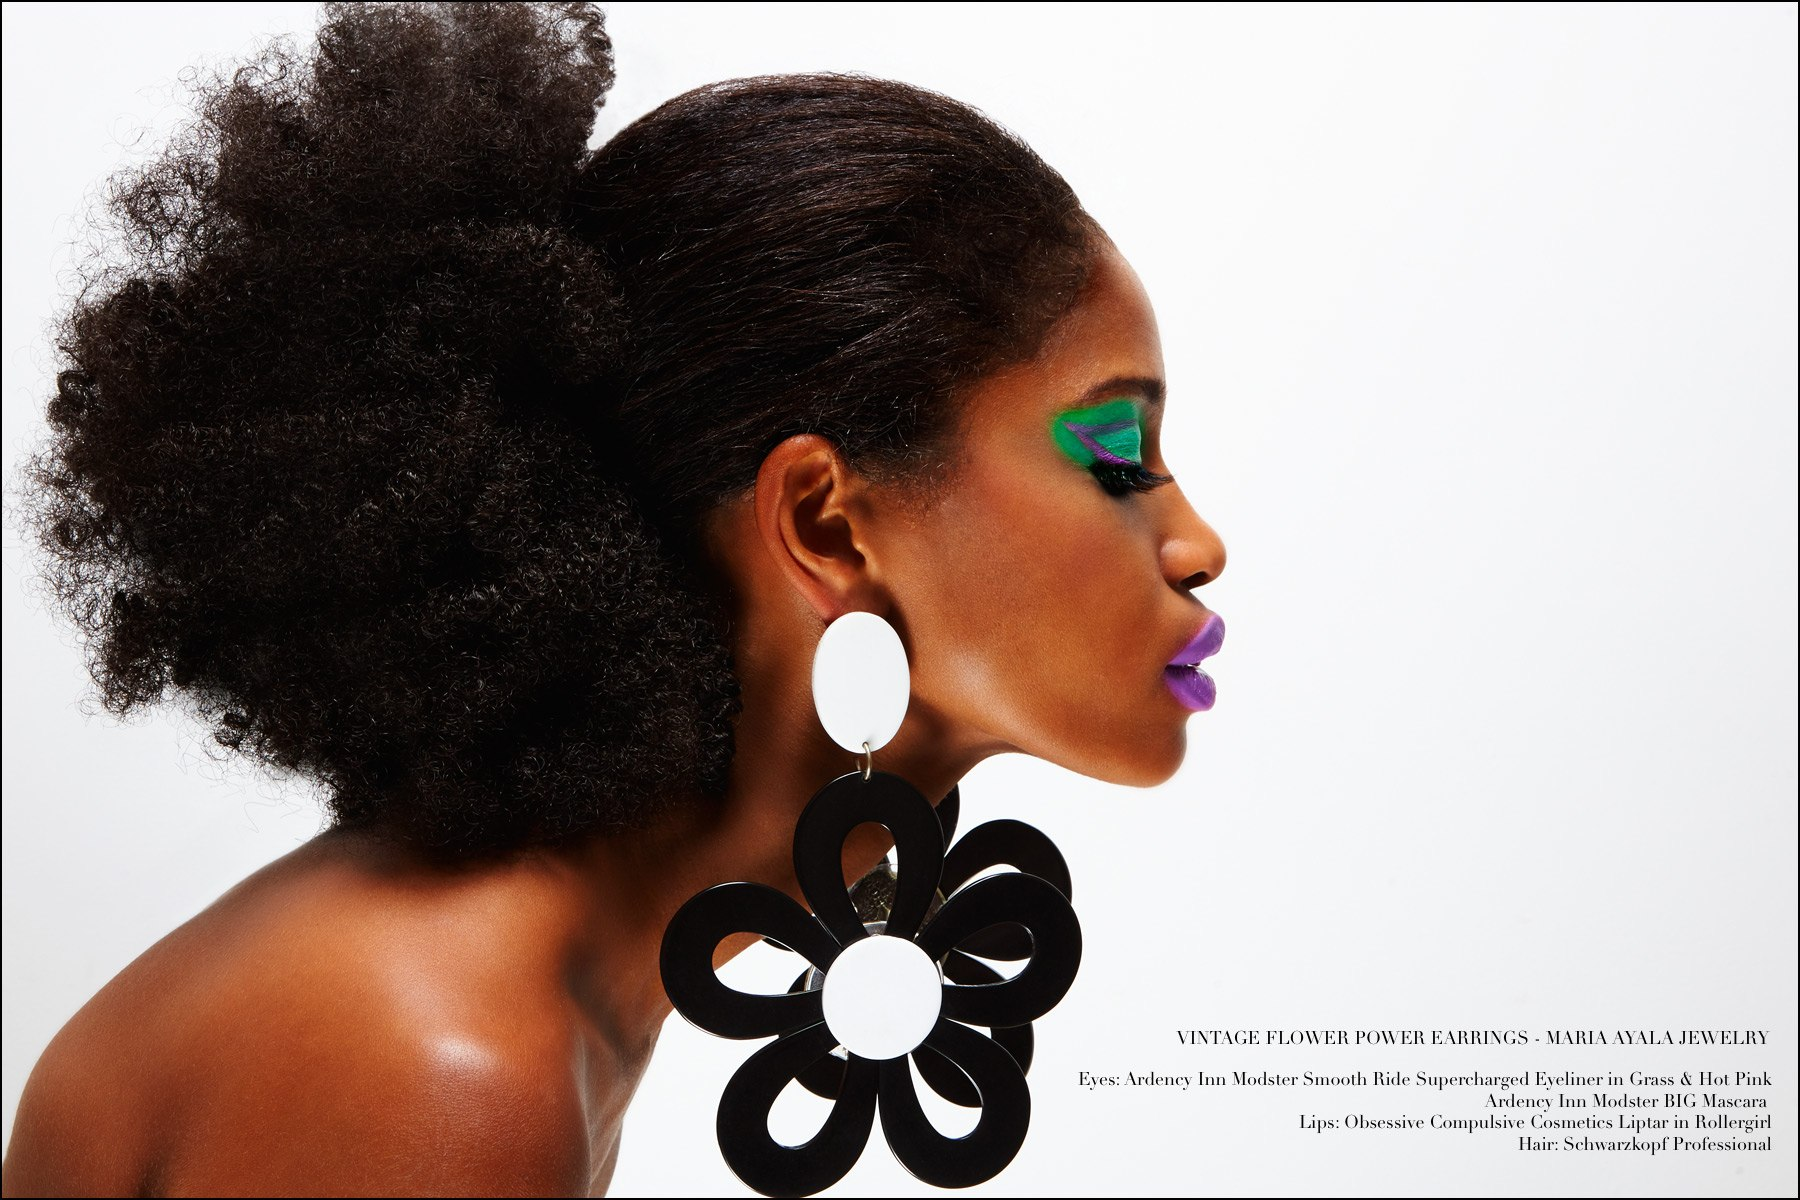 Dramatic oversized flower earrings designed by Maria Ayala, featured on model Christina Anderson-McDonald. Photography by Alexander Thompson for Ponyboy magazine NY.